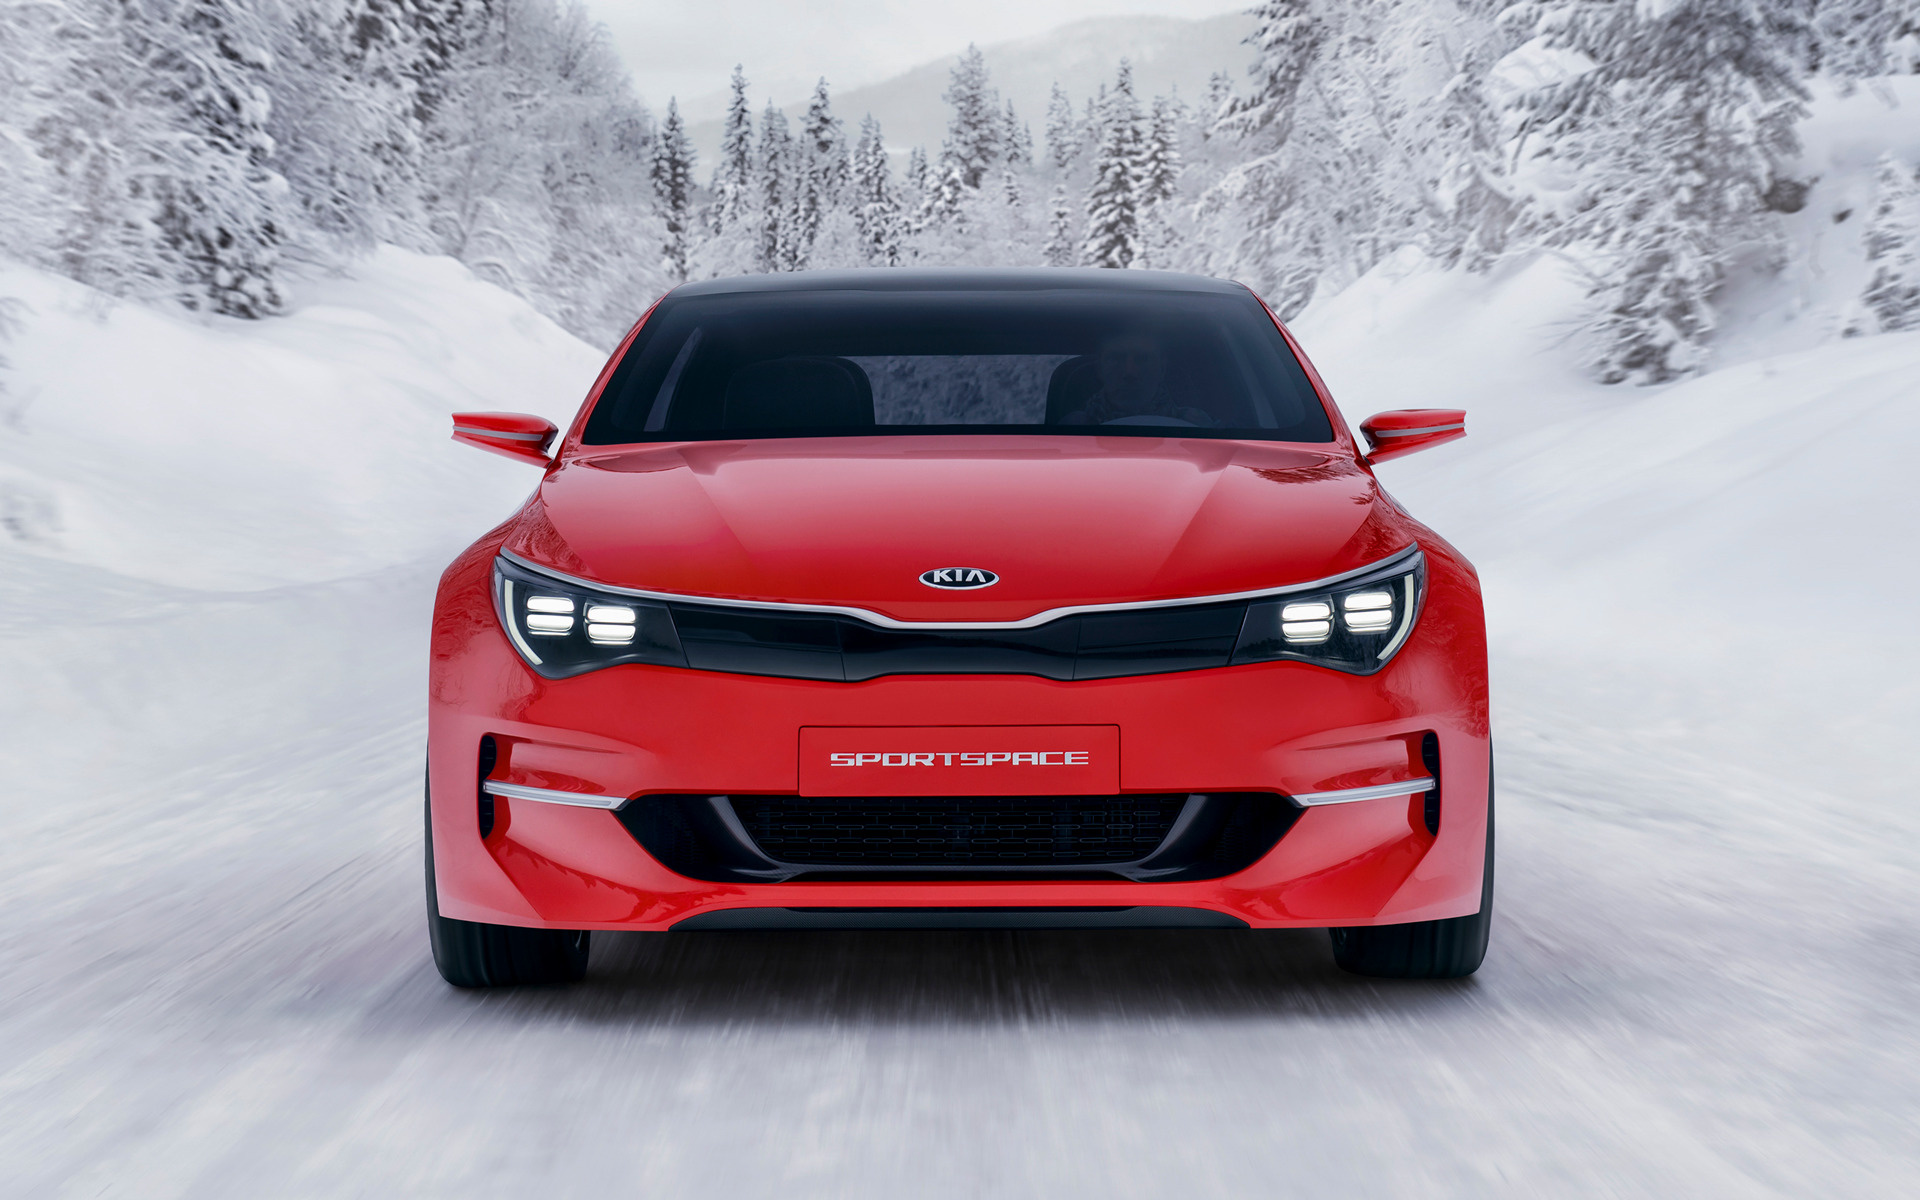 2015 Kia Sportspace Concept - Wallpapers and HD Images ...